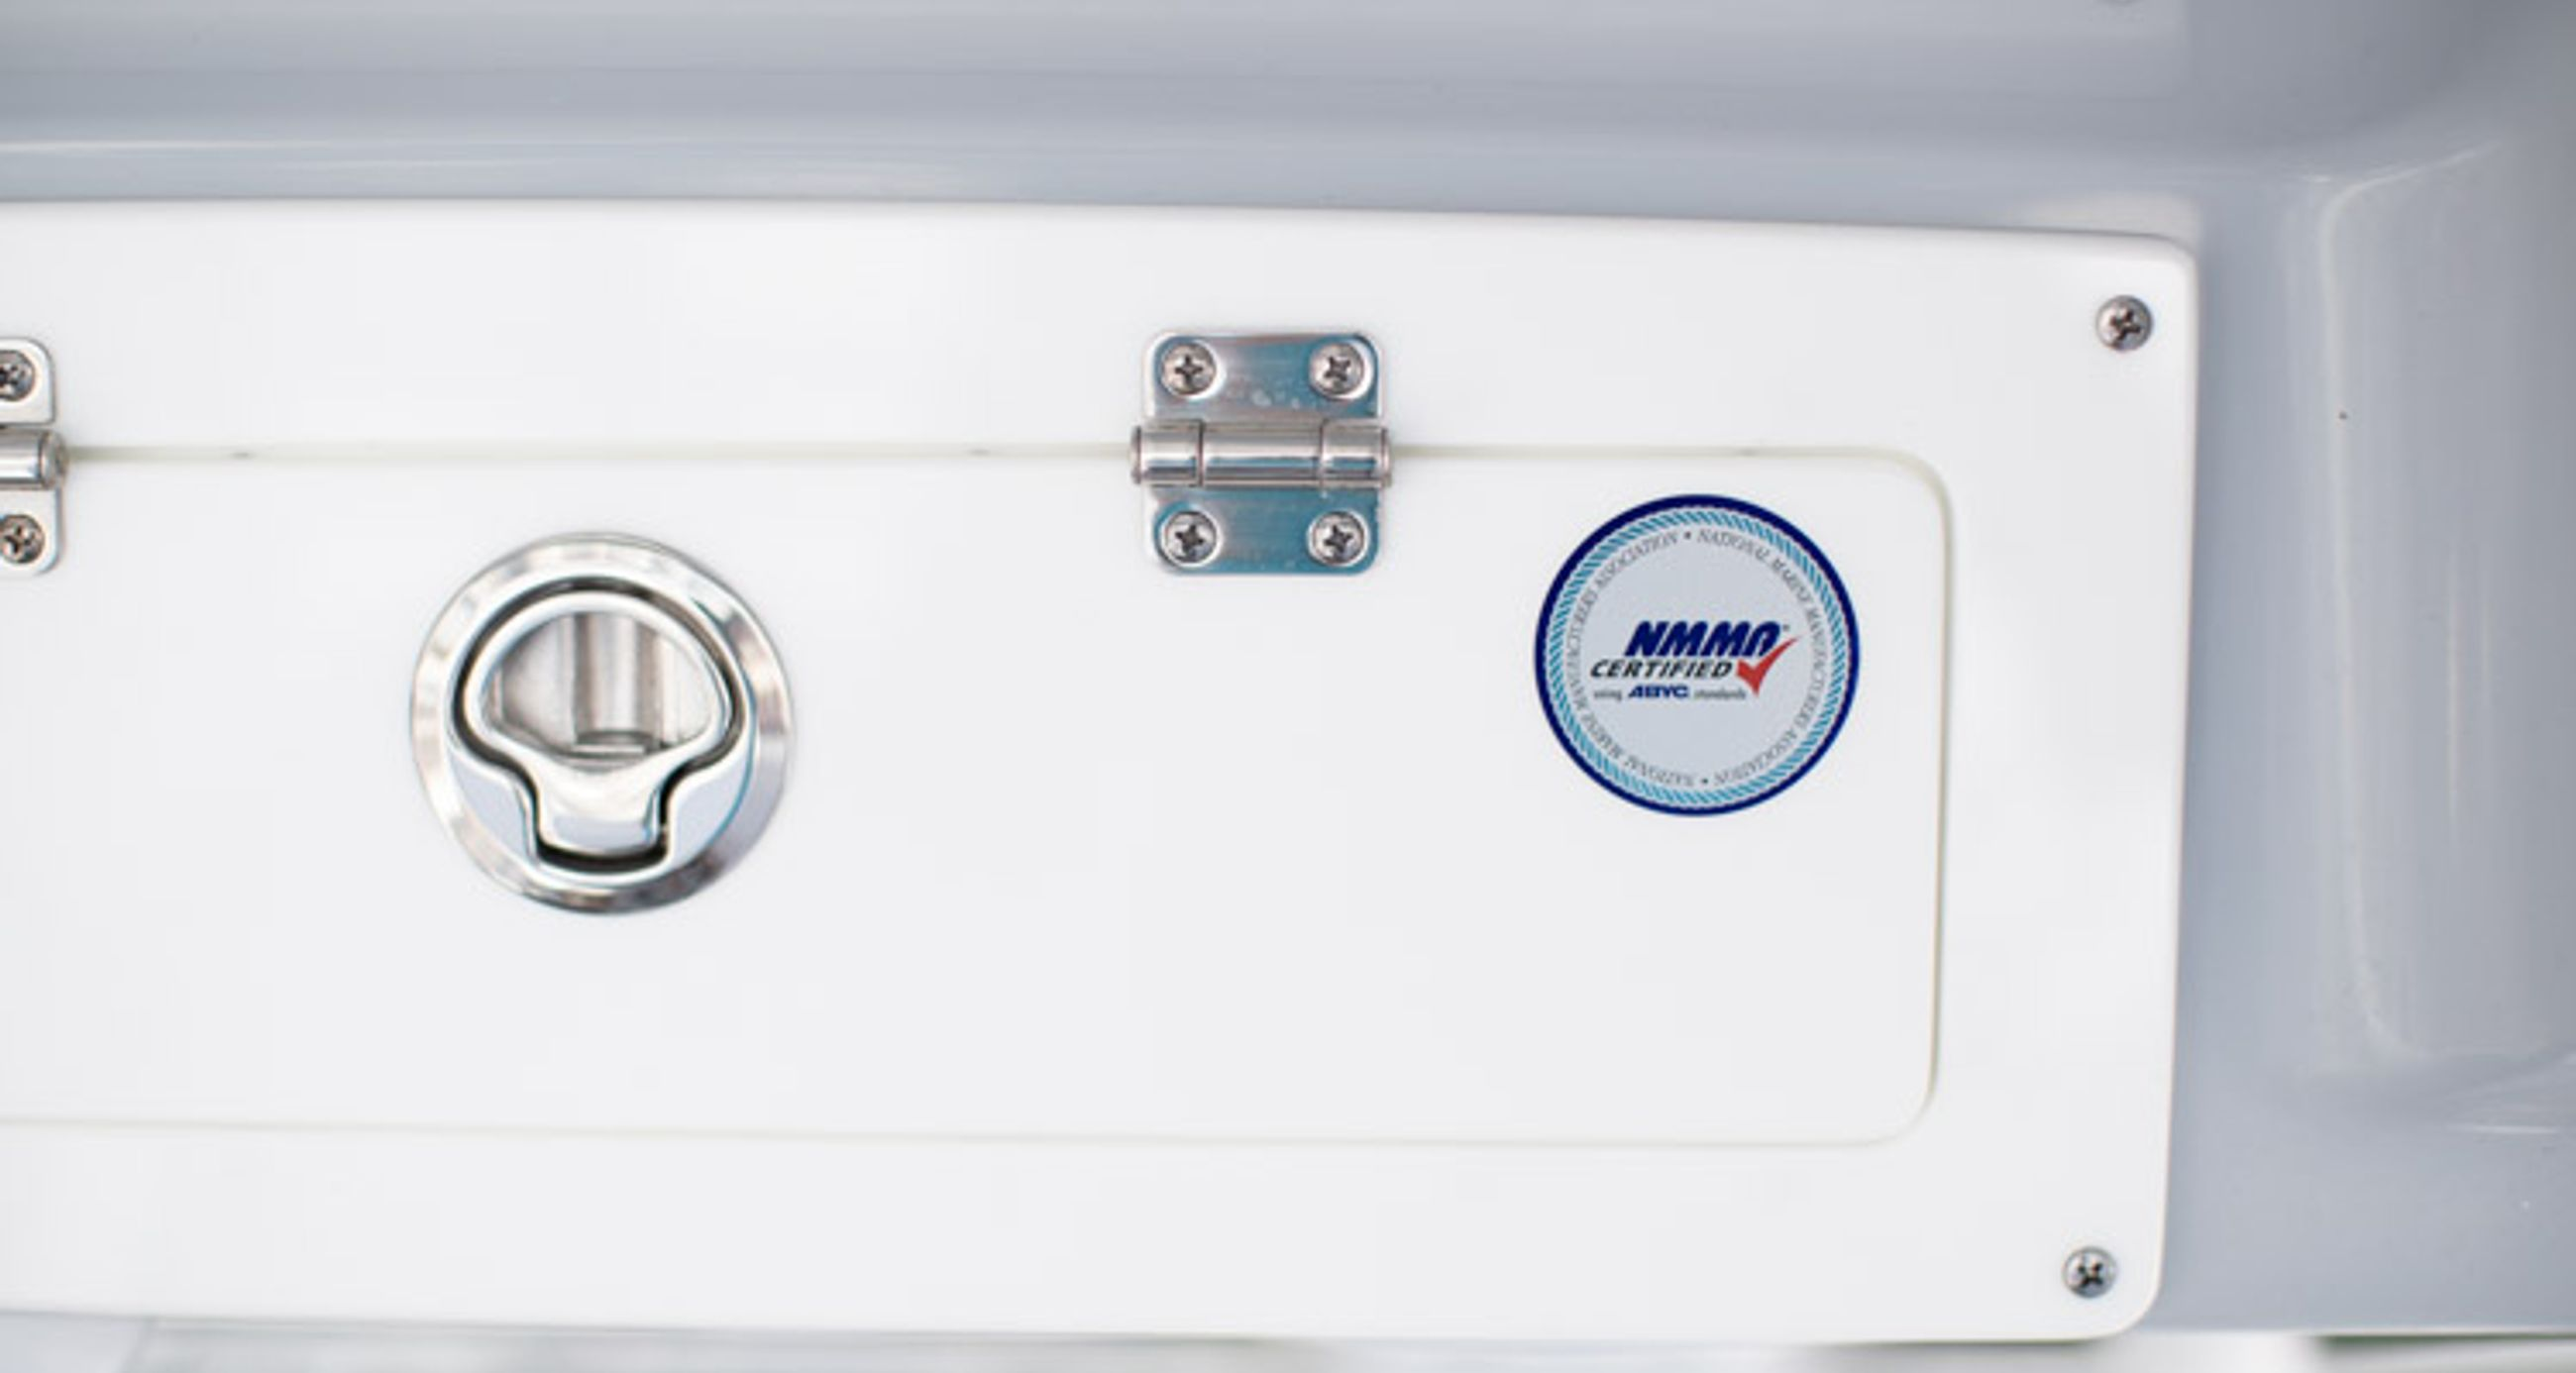 Detail image of NMMA Certified